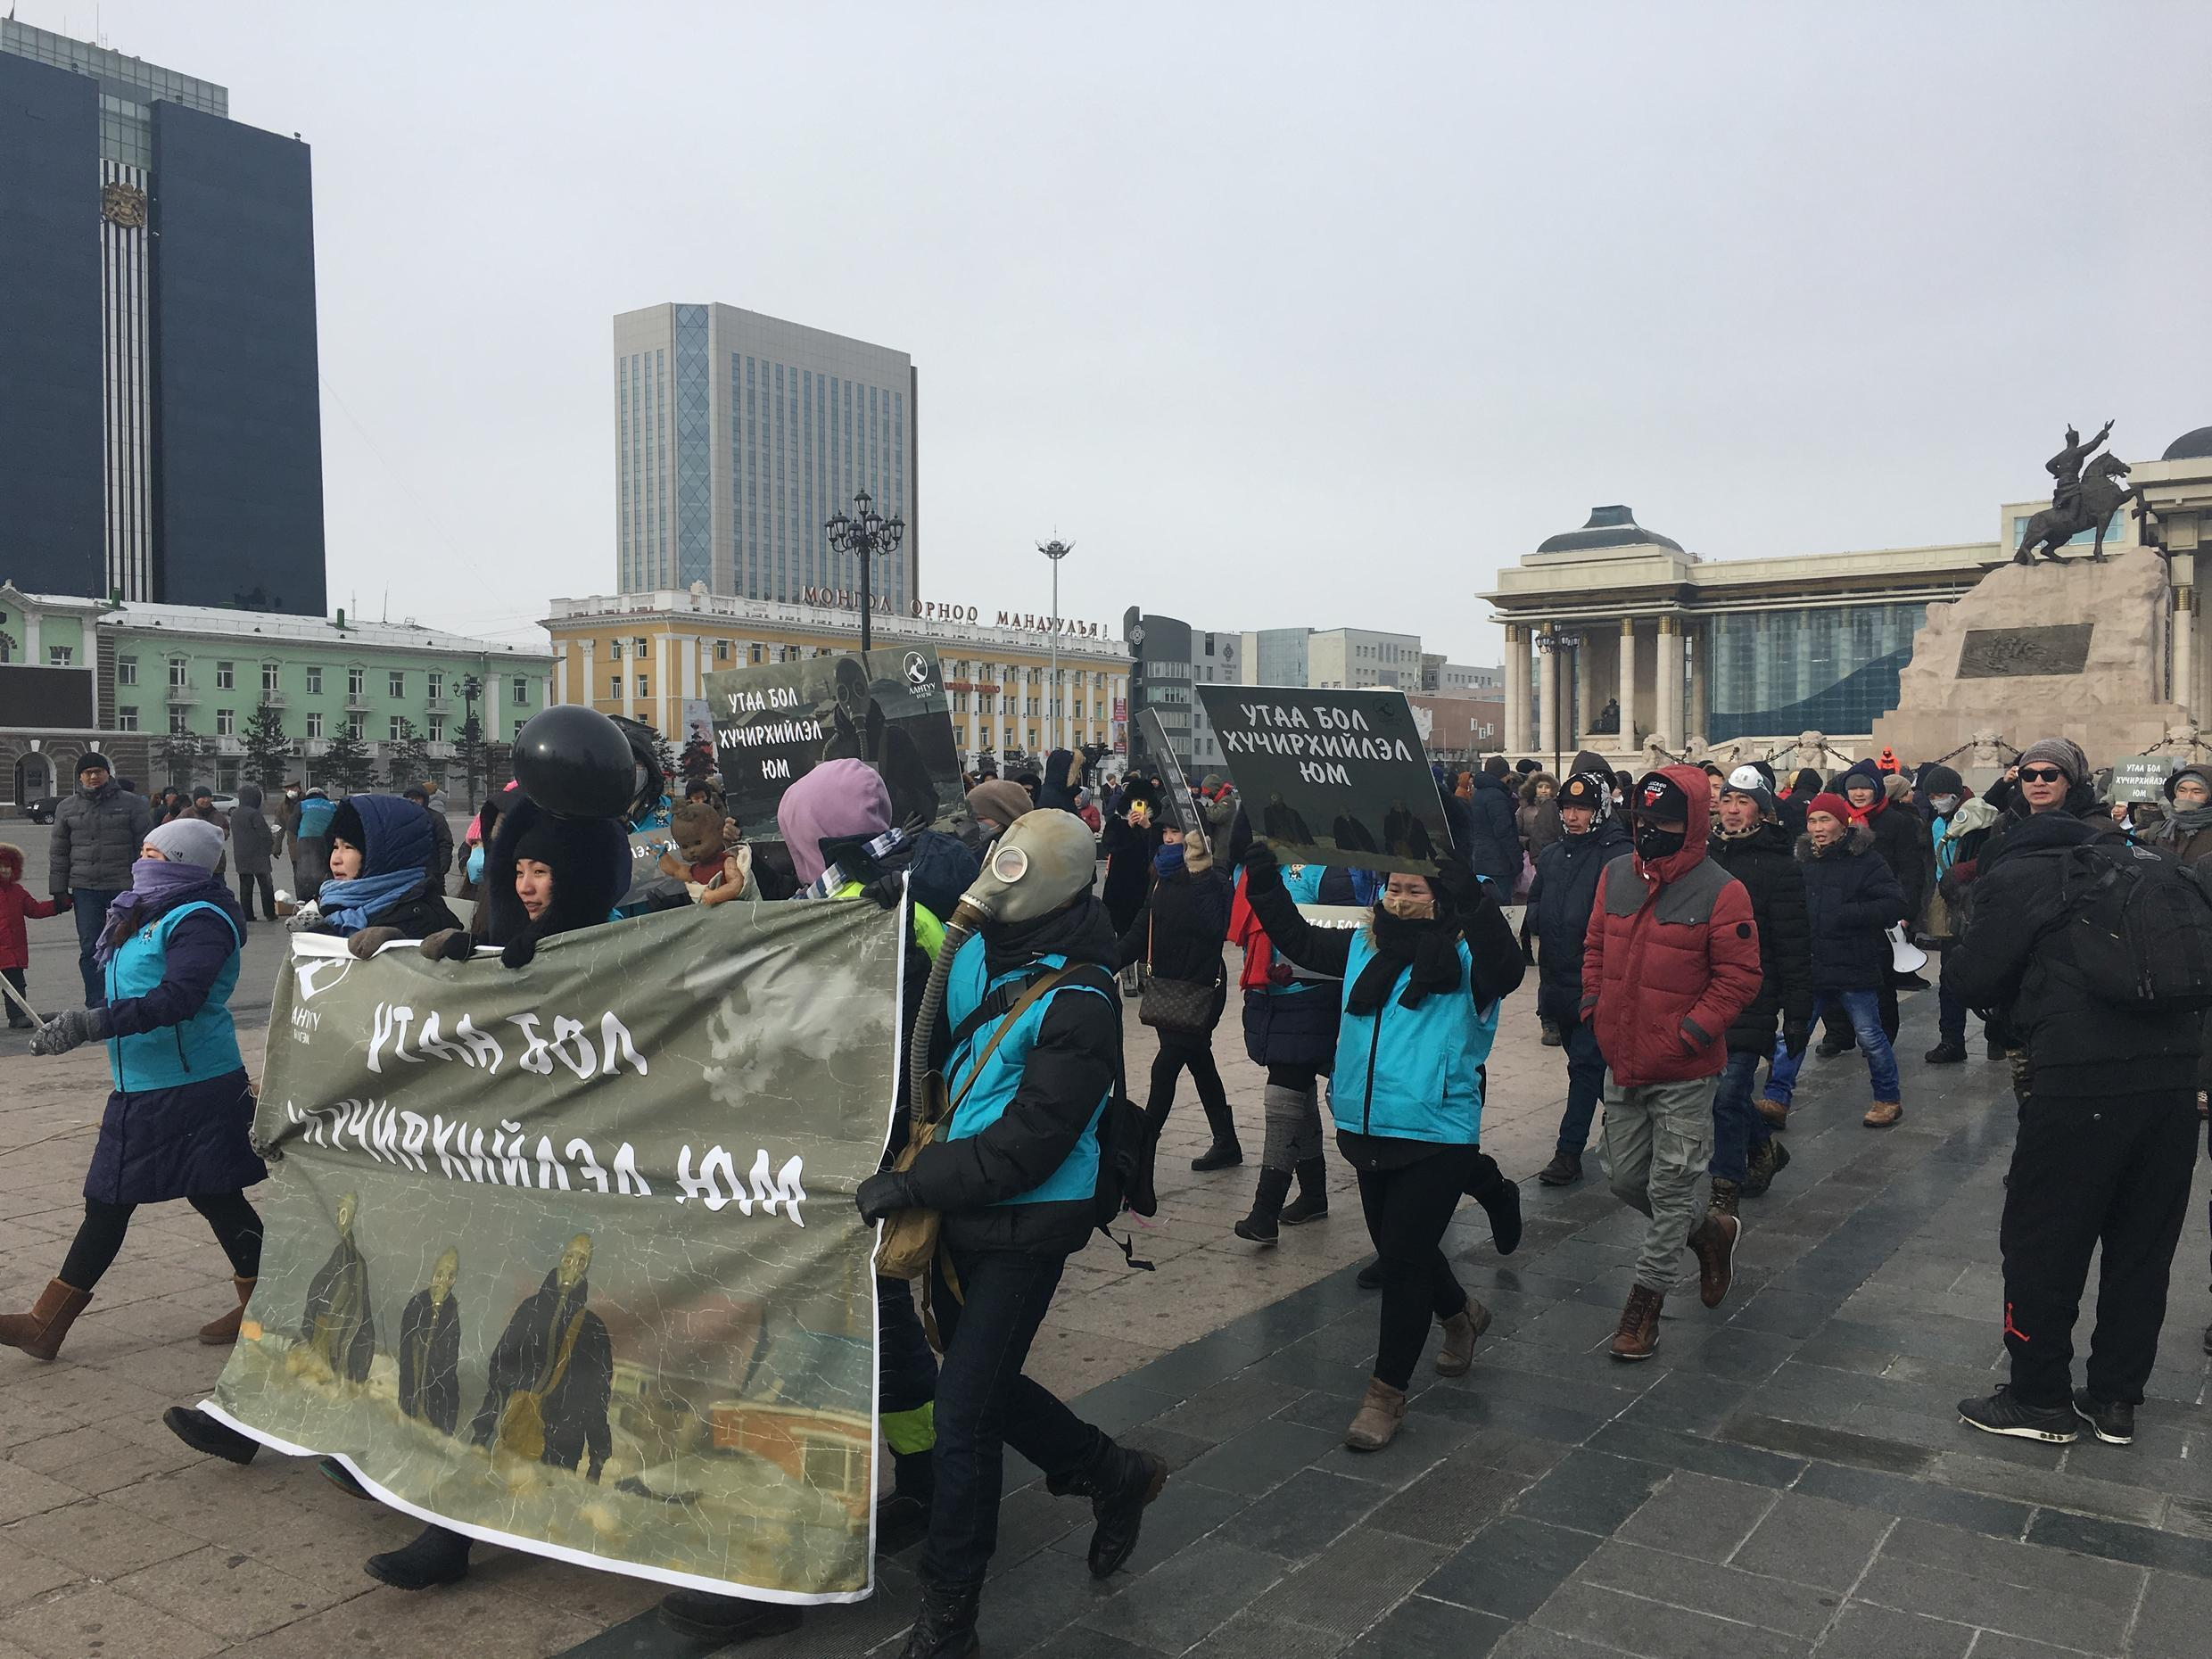 On Saturday, January 28, several thousand people took to the streets of Ulaanbaatar, the Mongolian capital, to demand that the government address the city's chronic pollution problem. Photo: Sainbayar Davaabat (@dsainbayar)